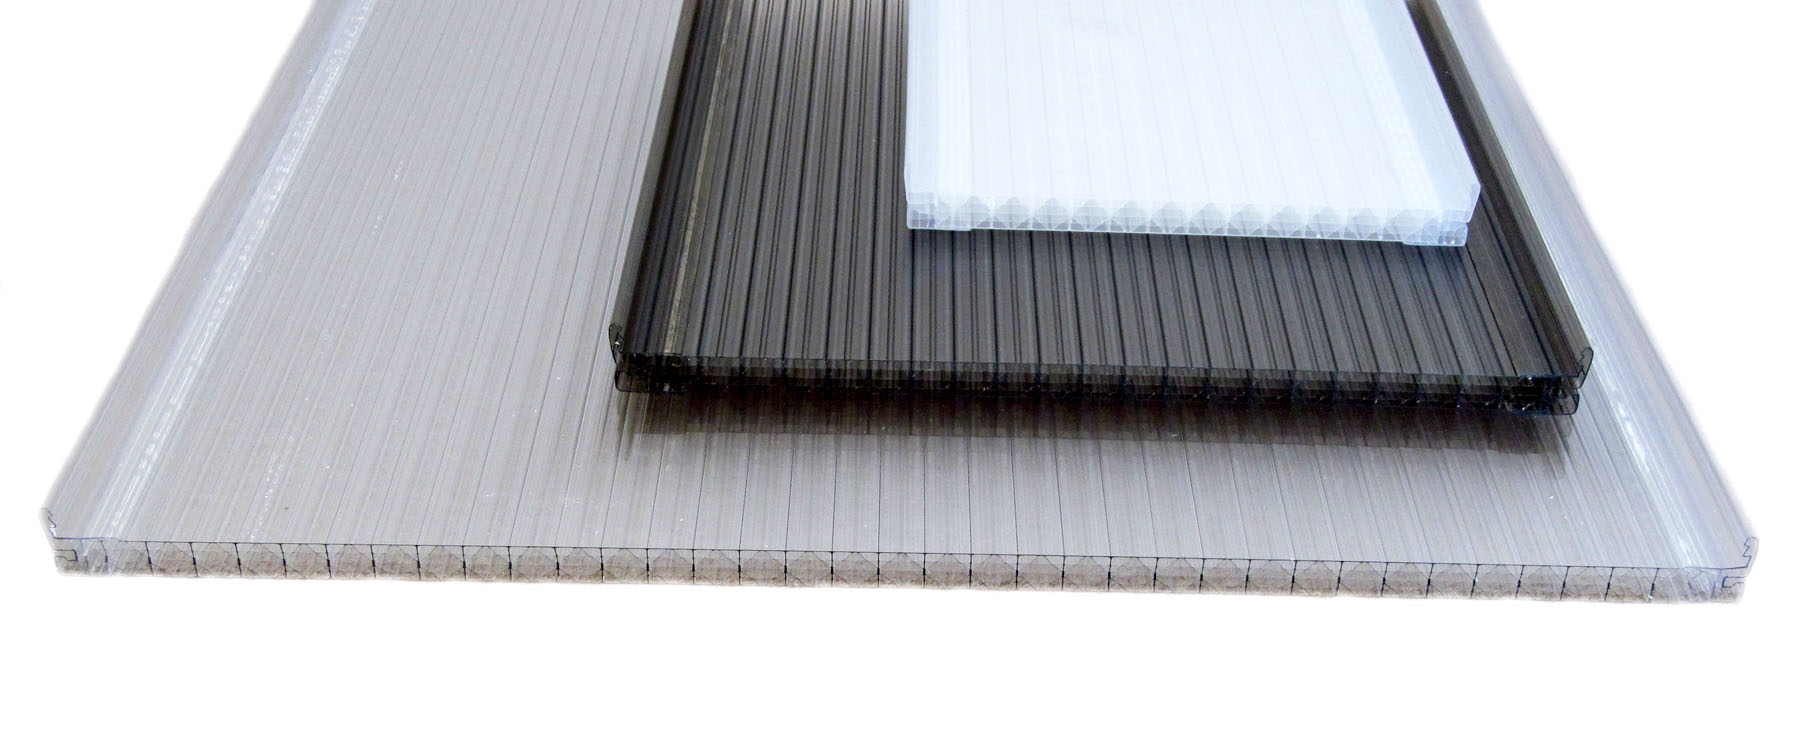 Lexapanel Polycarbonate Standing Seam System Crystalite